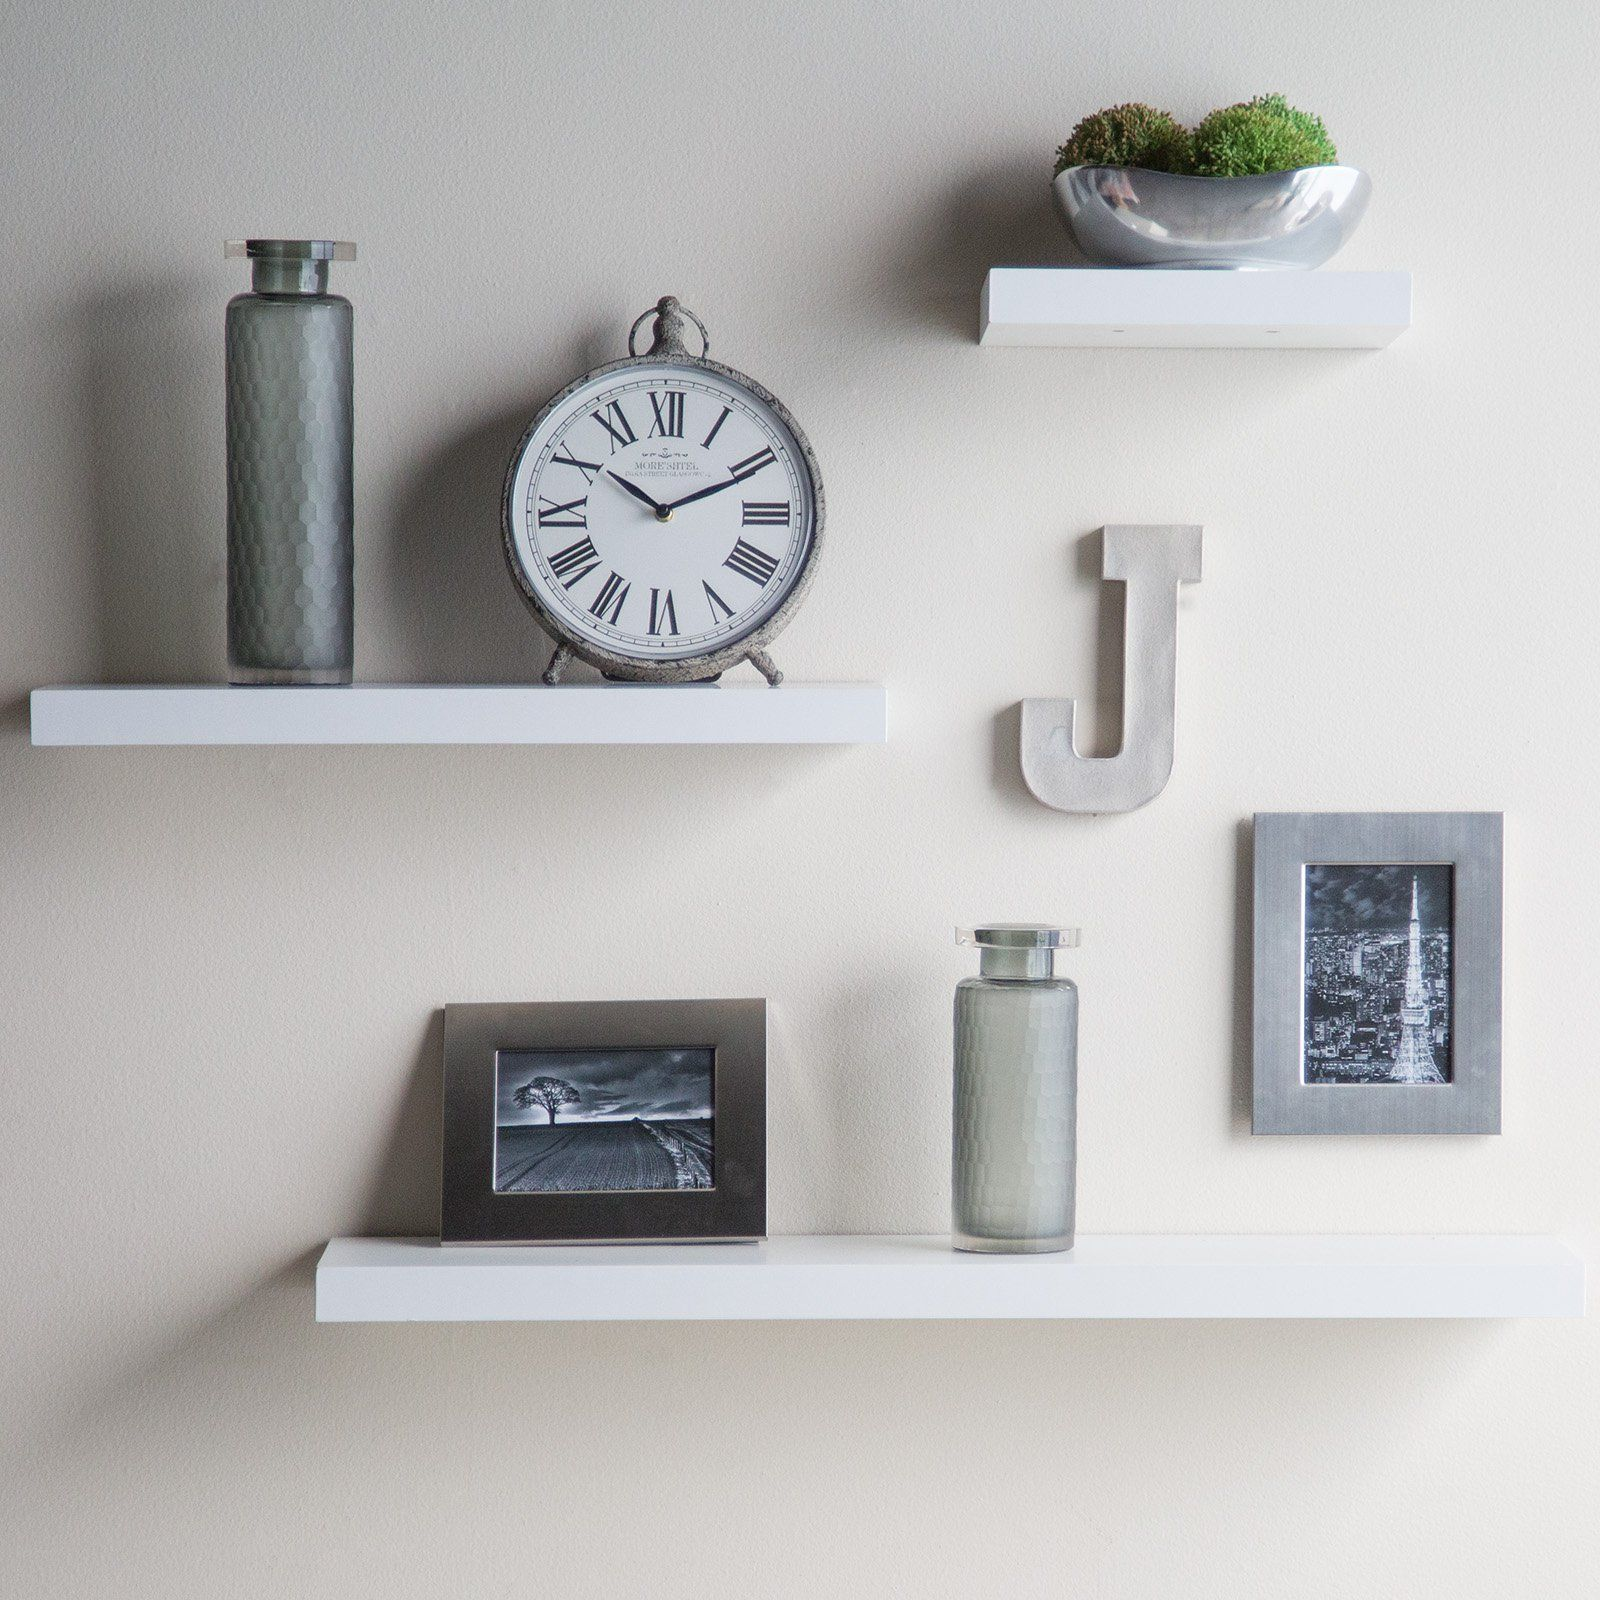 floating wall shelves - Decorative Wall Shelves